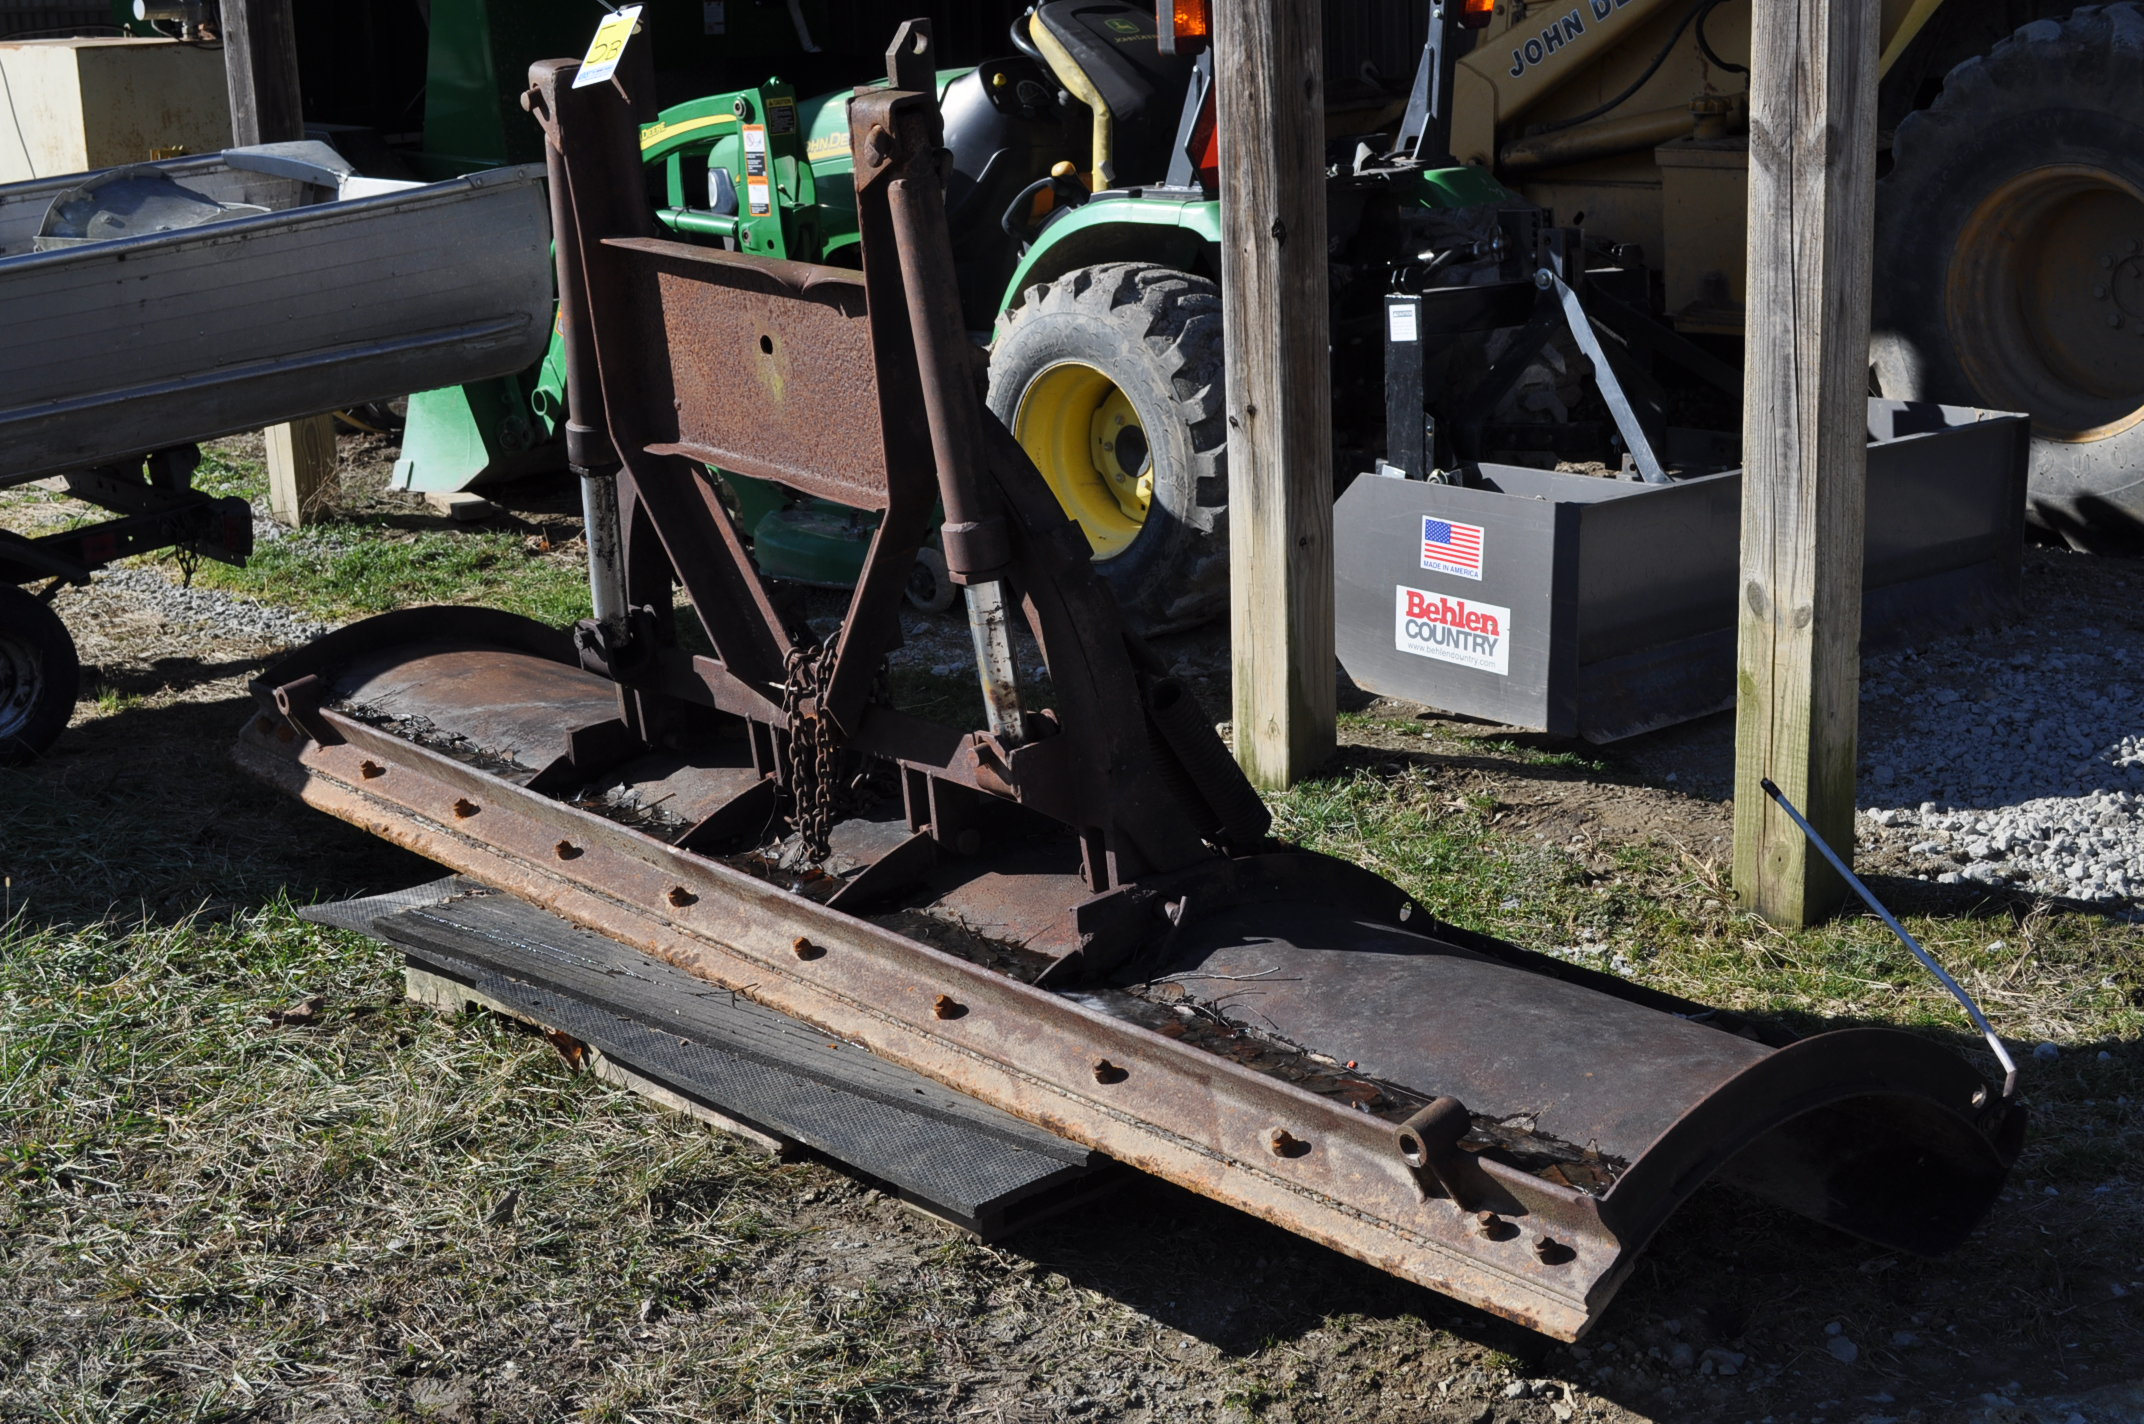 10' snow plow blade from dump truck - Image 2 of 4